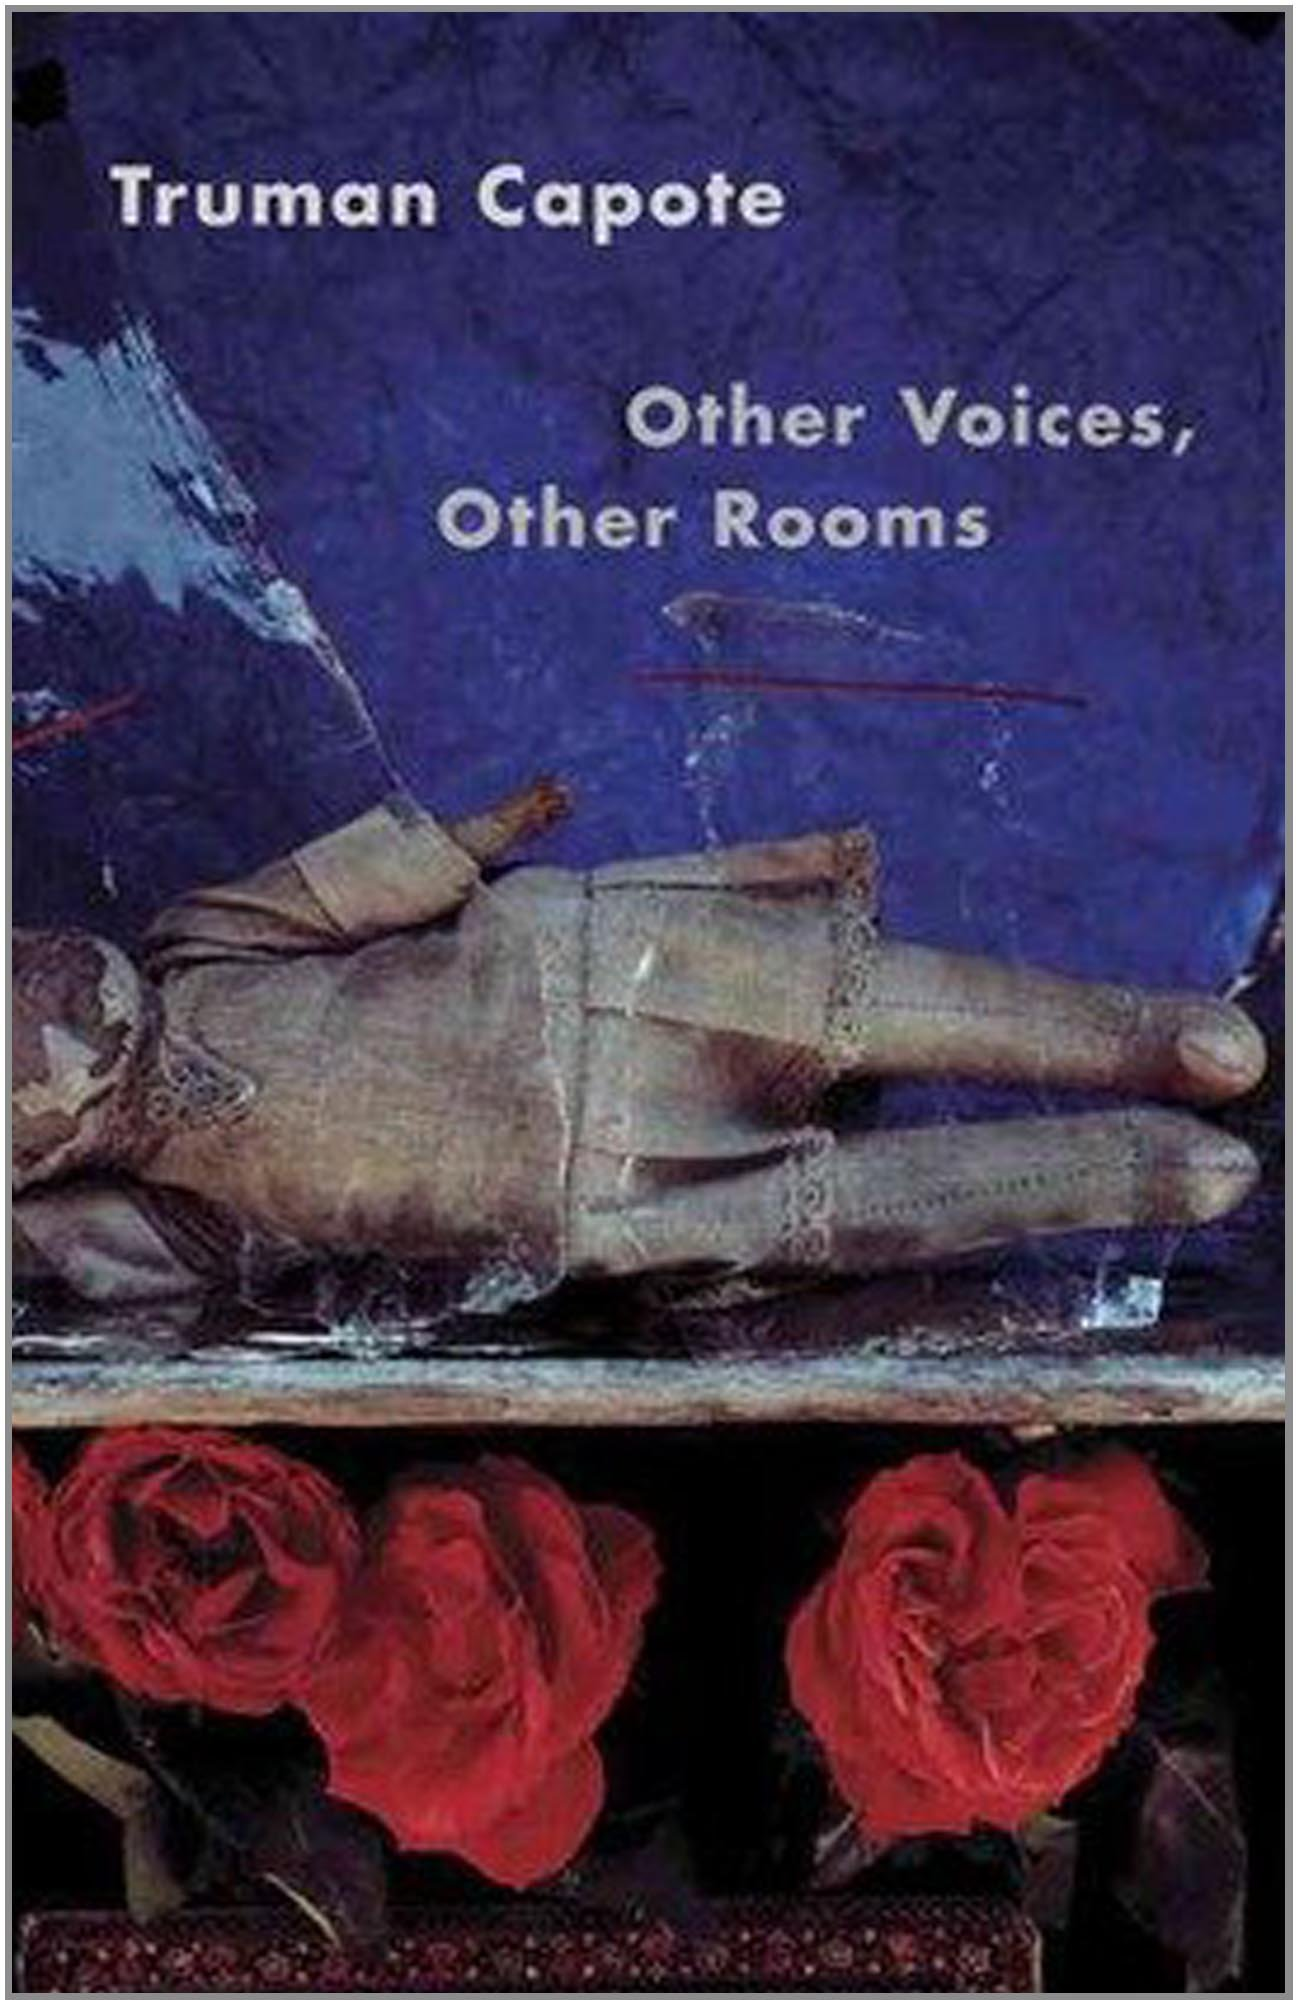 Other Voices, Other Rooms: Truman Capote: 9780679745648: Amazon.com ...